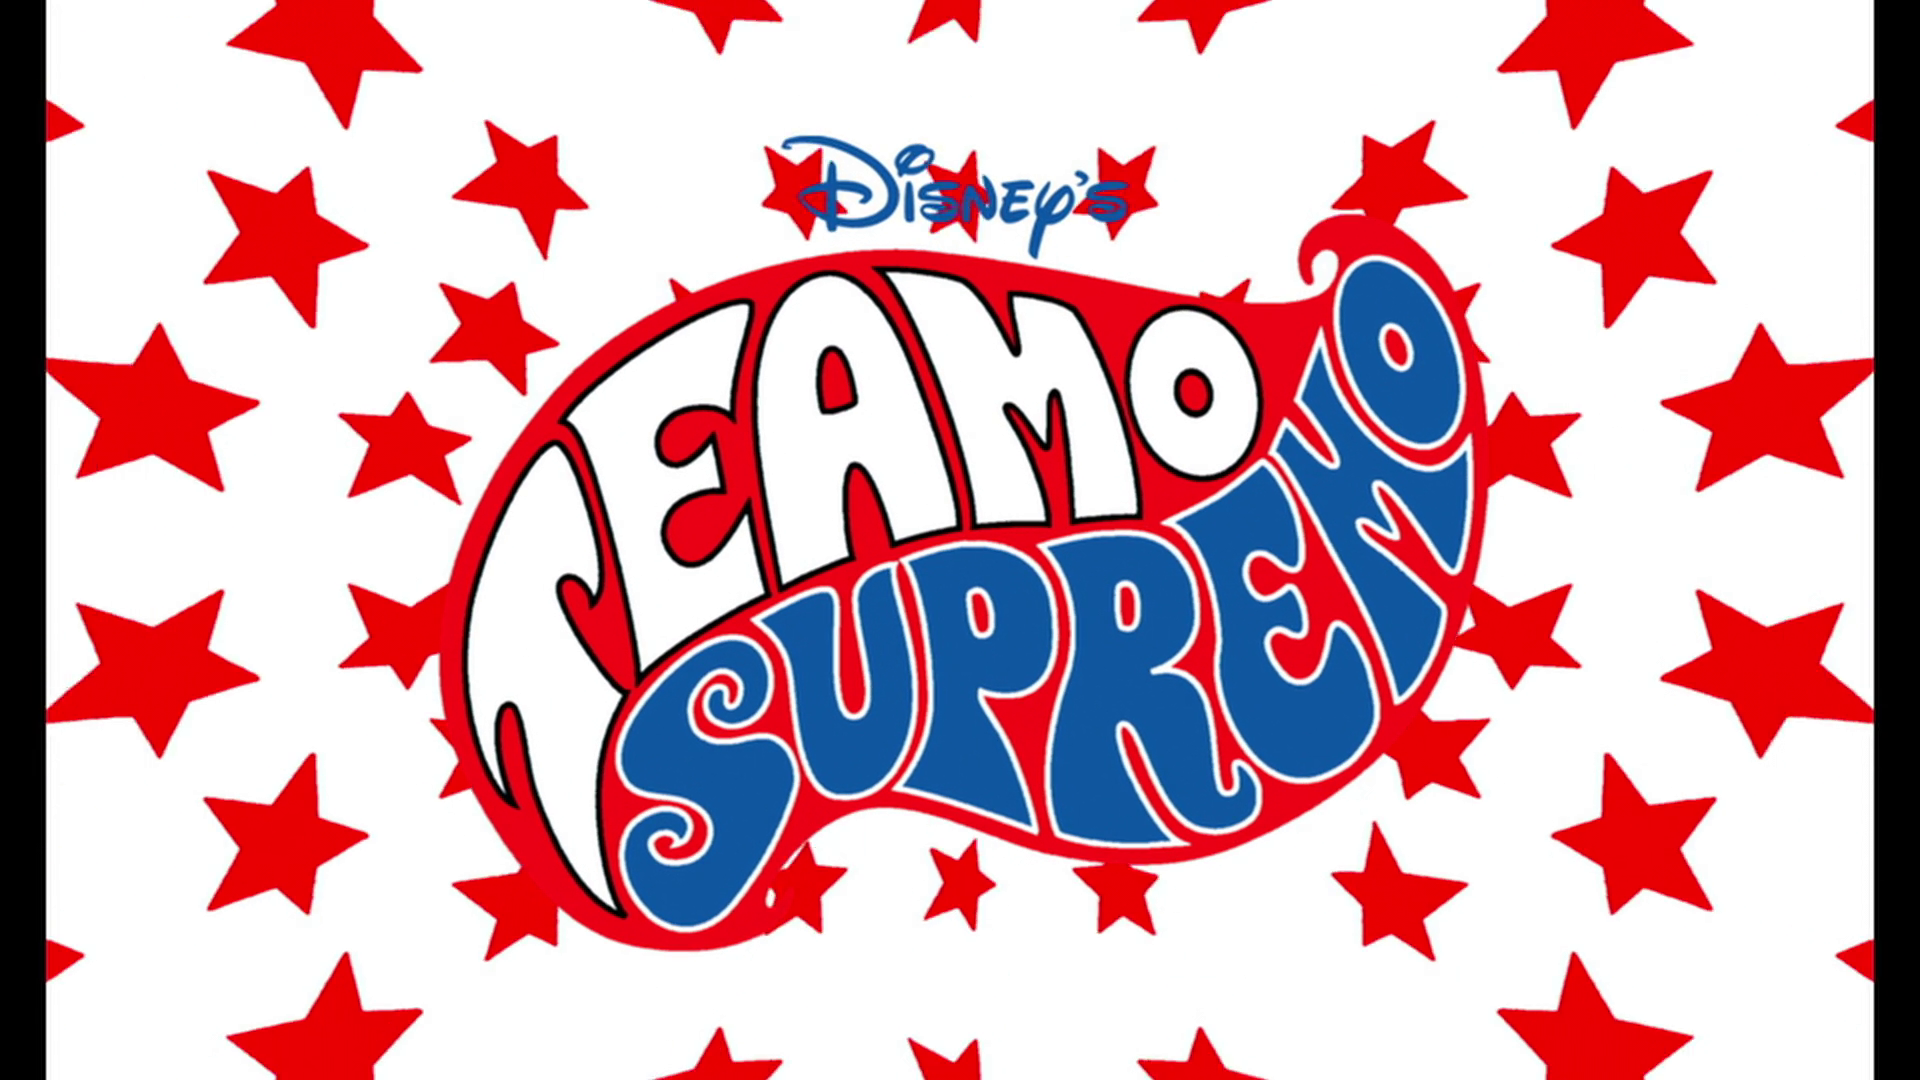 Teamo Supremo | International ...